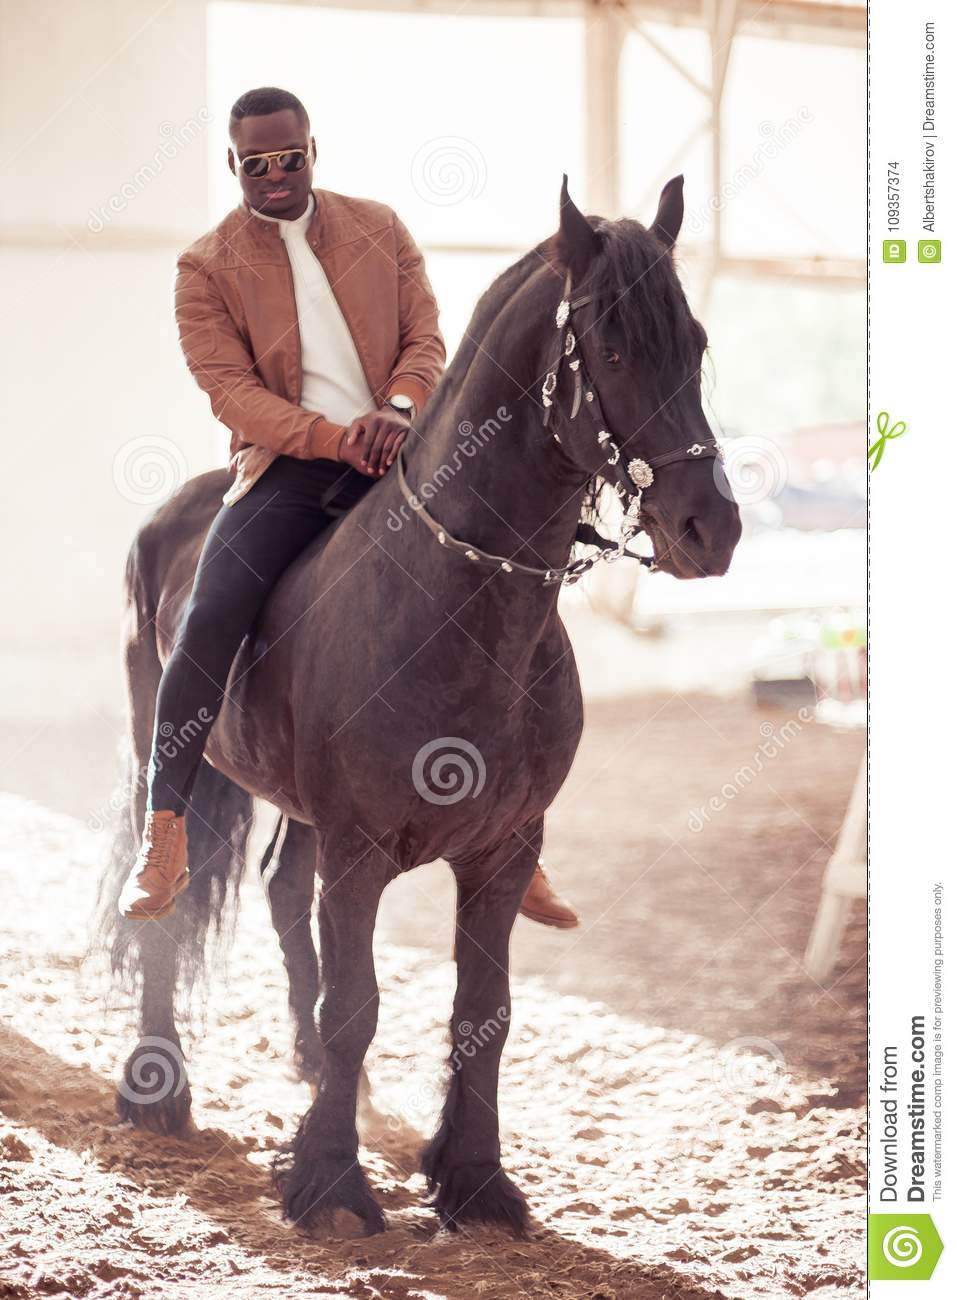 Man Riding Brown Horse On Countryside Stock Photo Image Of Black Lifestyle 109357374